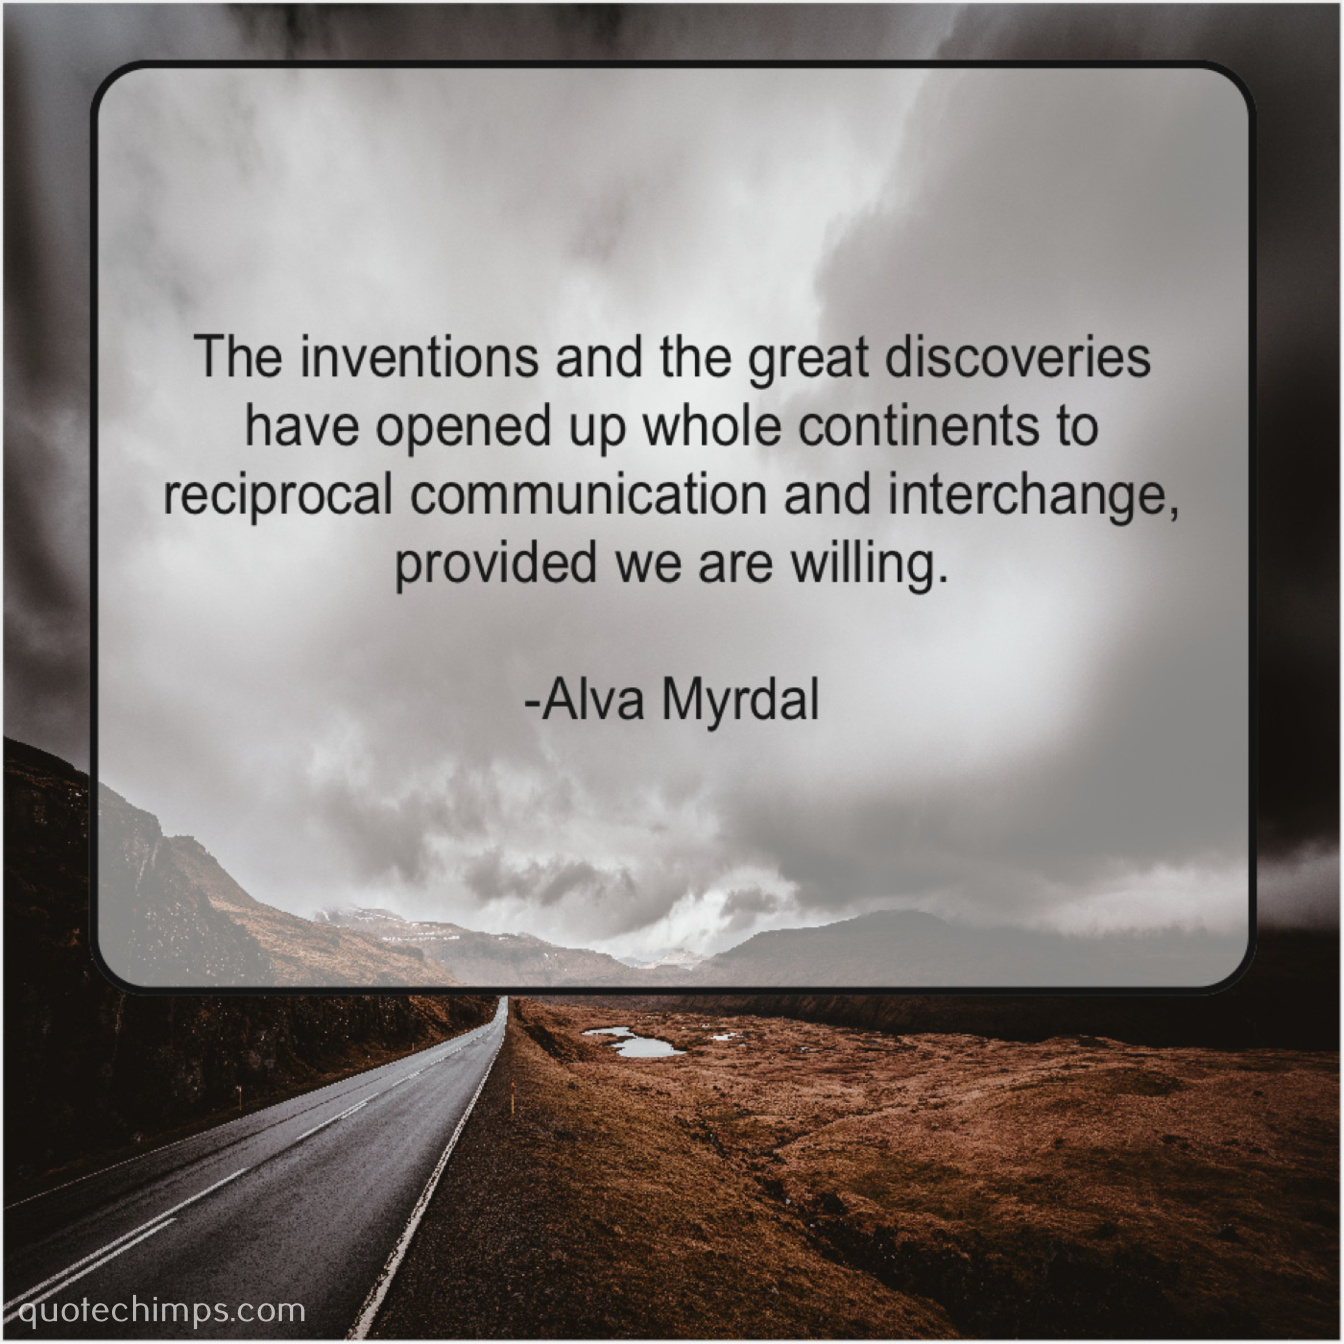 Alva Myrdal The Inventions And The Great Quote Chimps